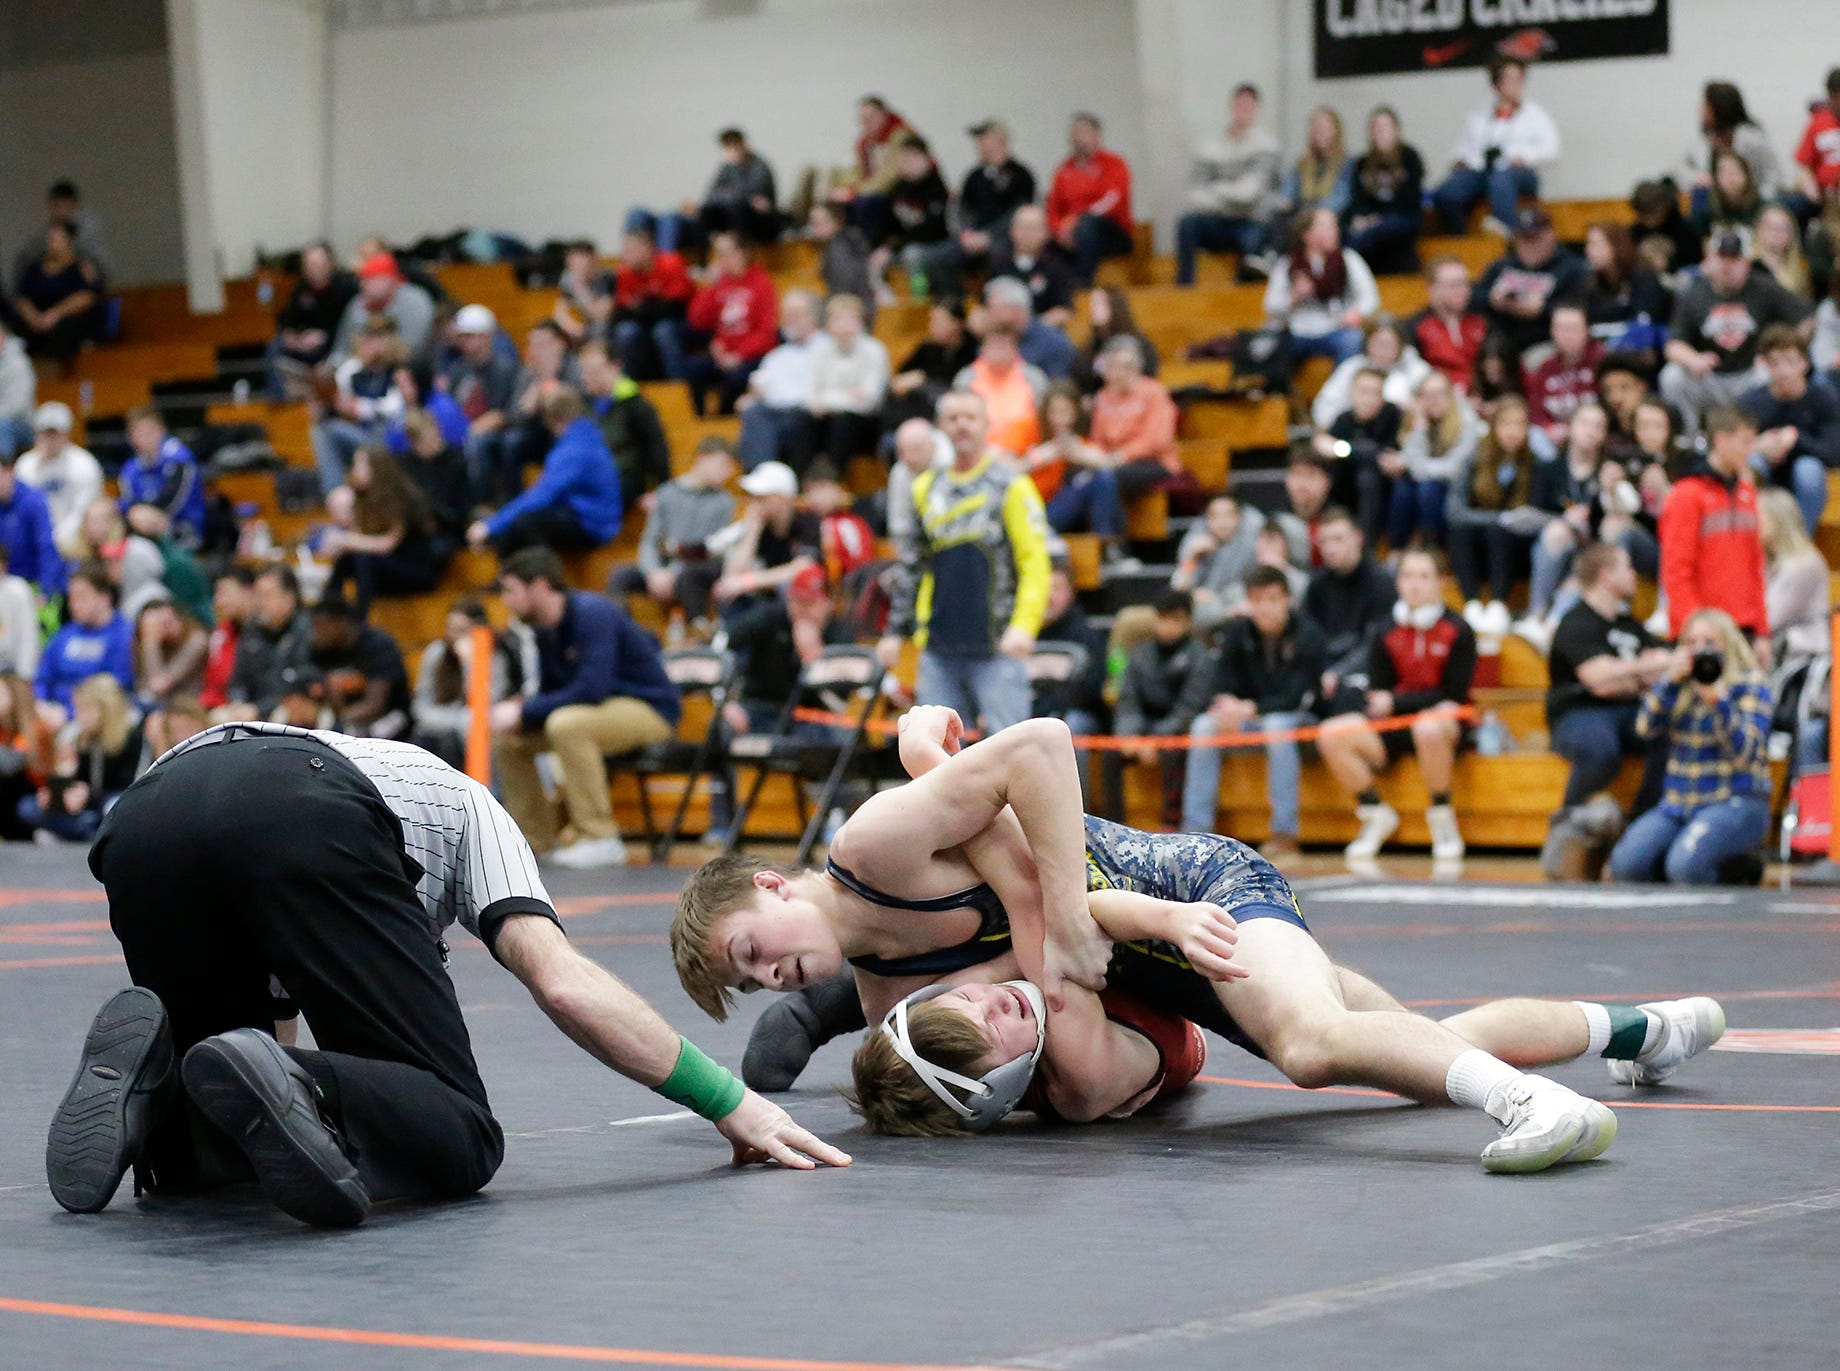 Michael Streblow of Fond du lac High School wrestles Tyler Schiesl of Germantown High School in the 113 pound weight class during the WIAA sectionals Saturday, February 16, 2019 in Hartford, Wis. Schiesl won with a pin. Doug Raflik/USA TODAY NETWORK-Wisconsin